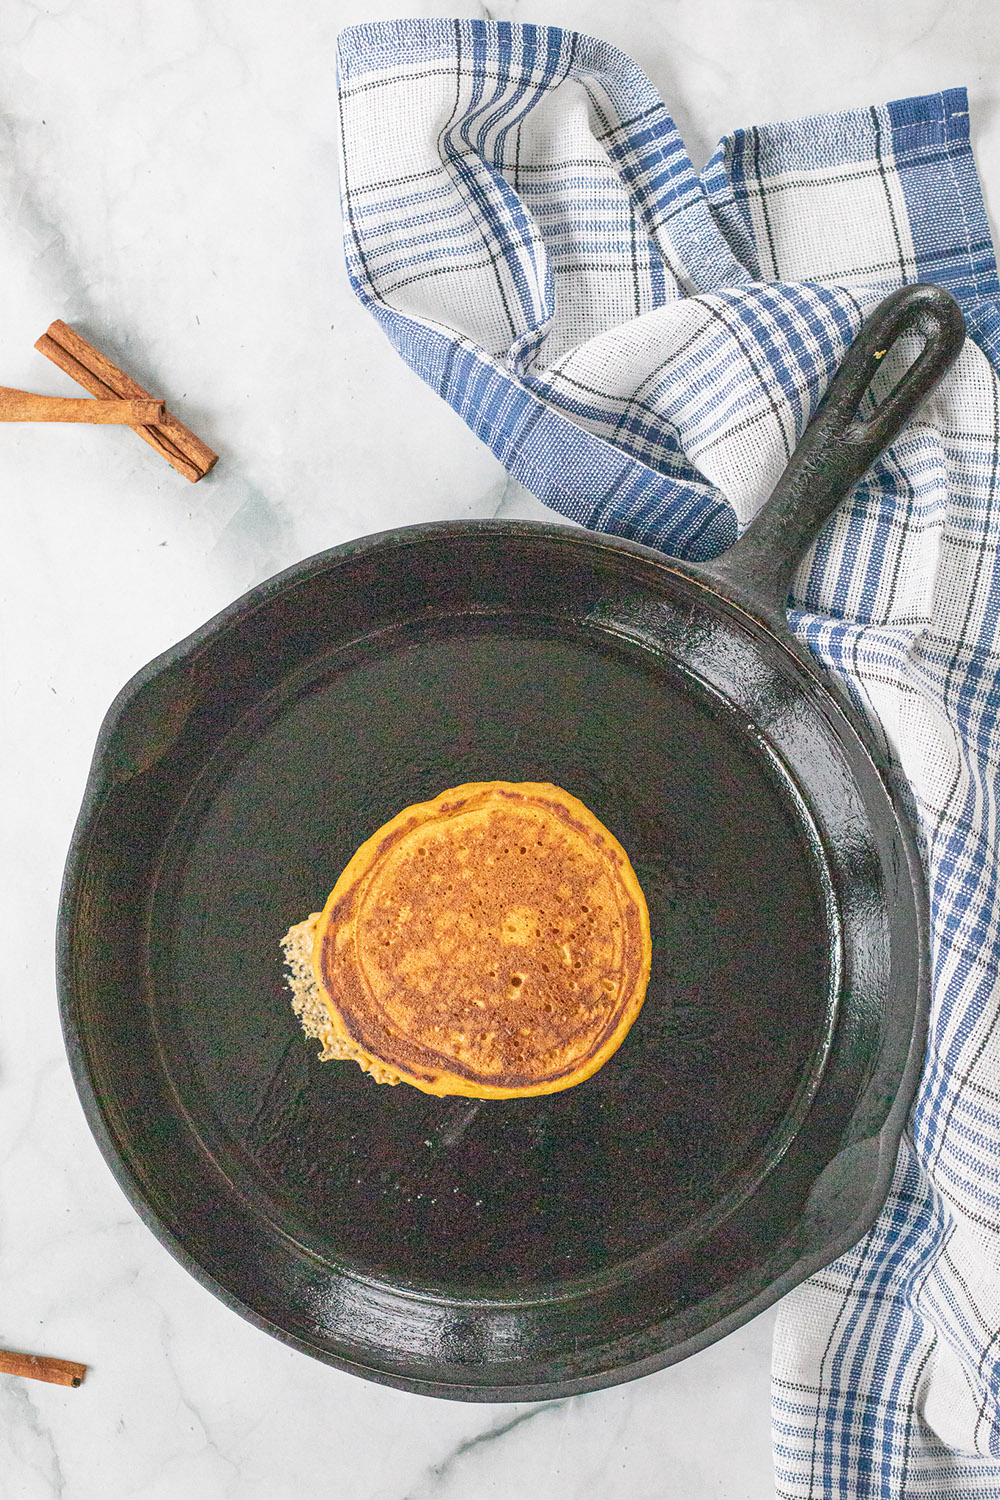 A pancake in a skillet.